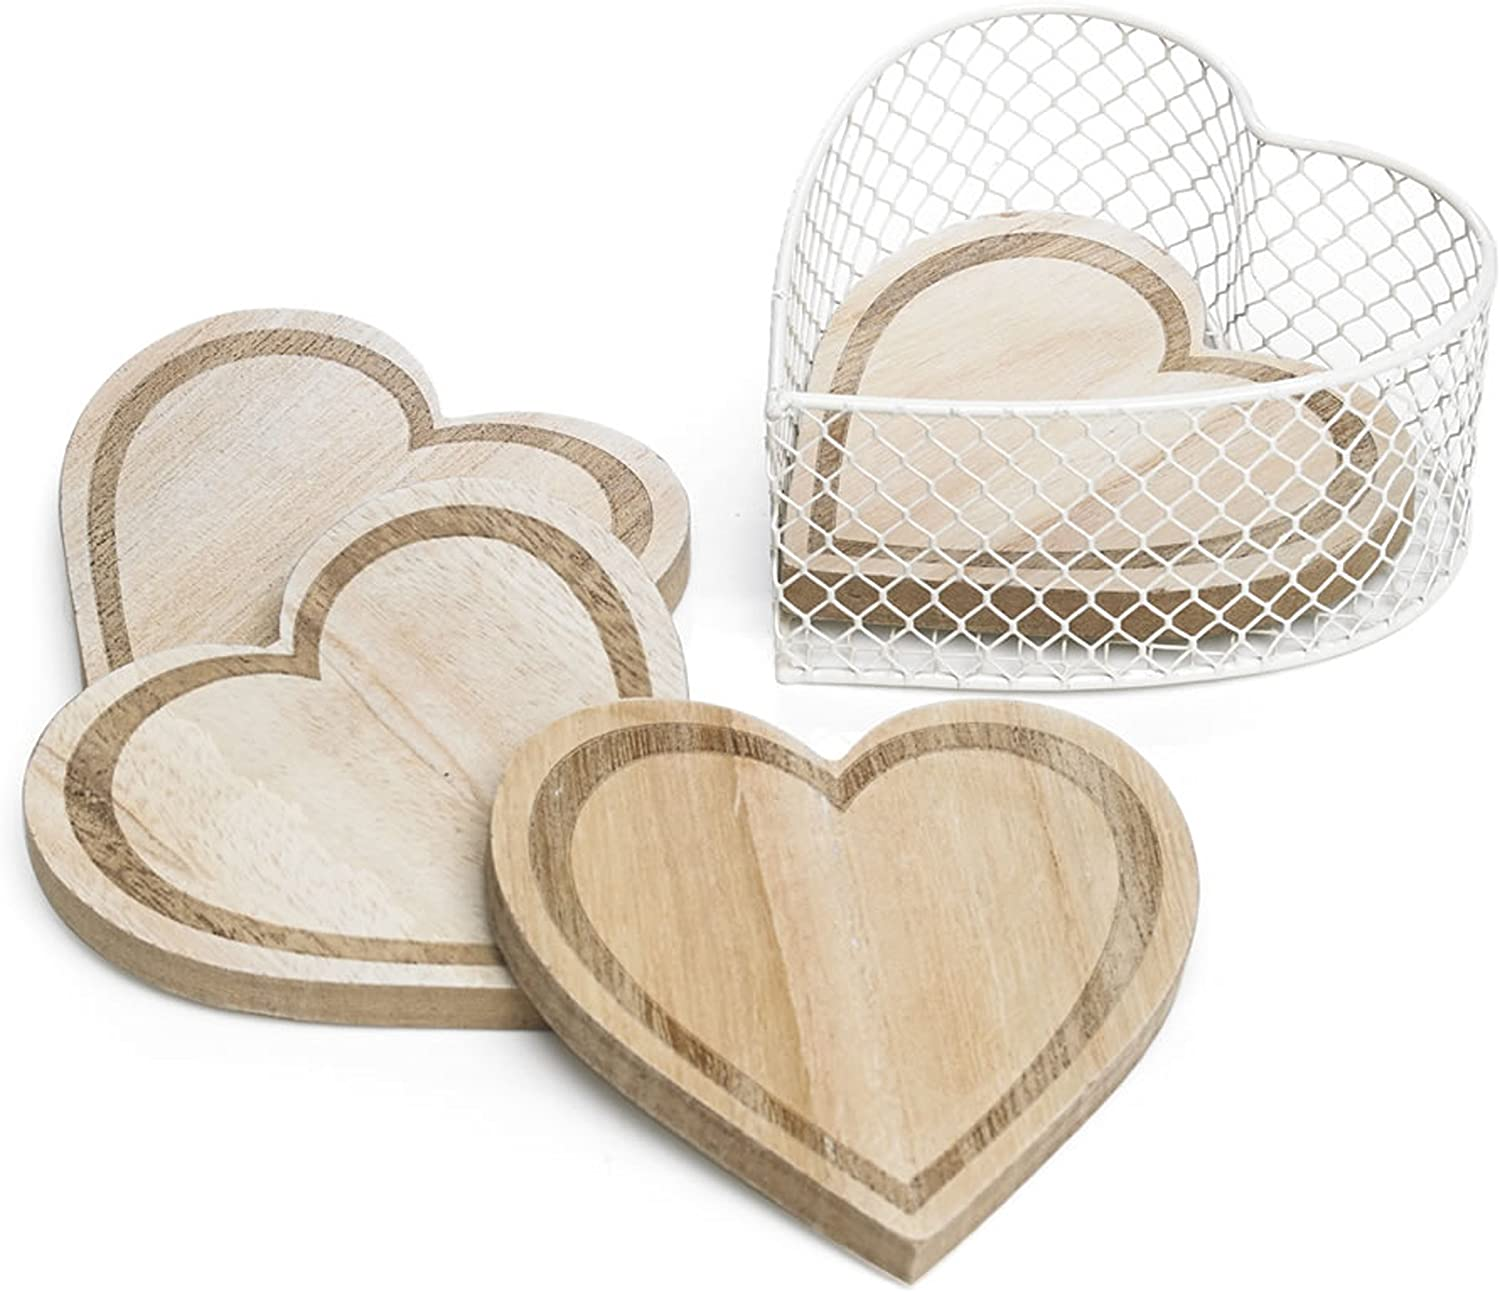 CVHOMEDECO. Engraving Heart Shape Wooden Coasters Set with Basket Holder for Wine Glasses, Beer, Whiskey, Cocktail, Coffee, Tea, Beverages, Hot and Cold Drinks, 4 x 3-7/8 Inch, Set of 4